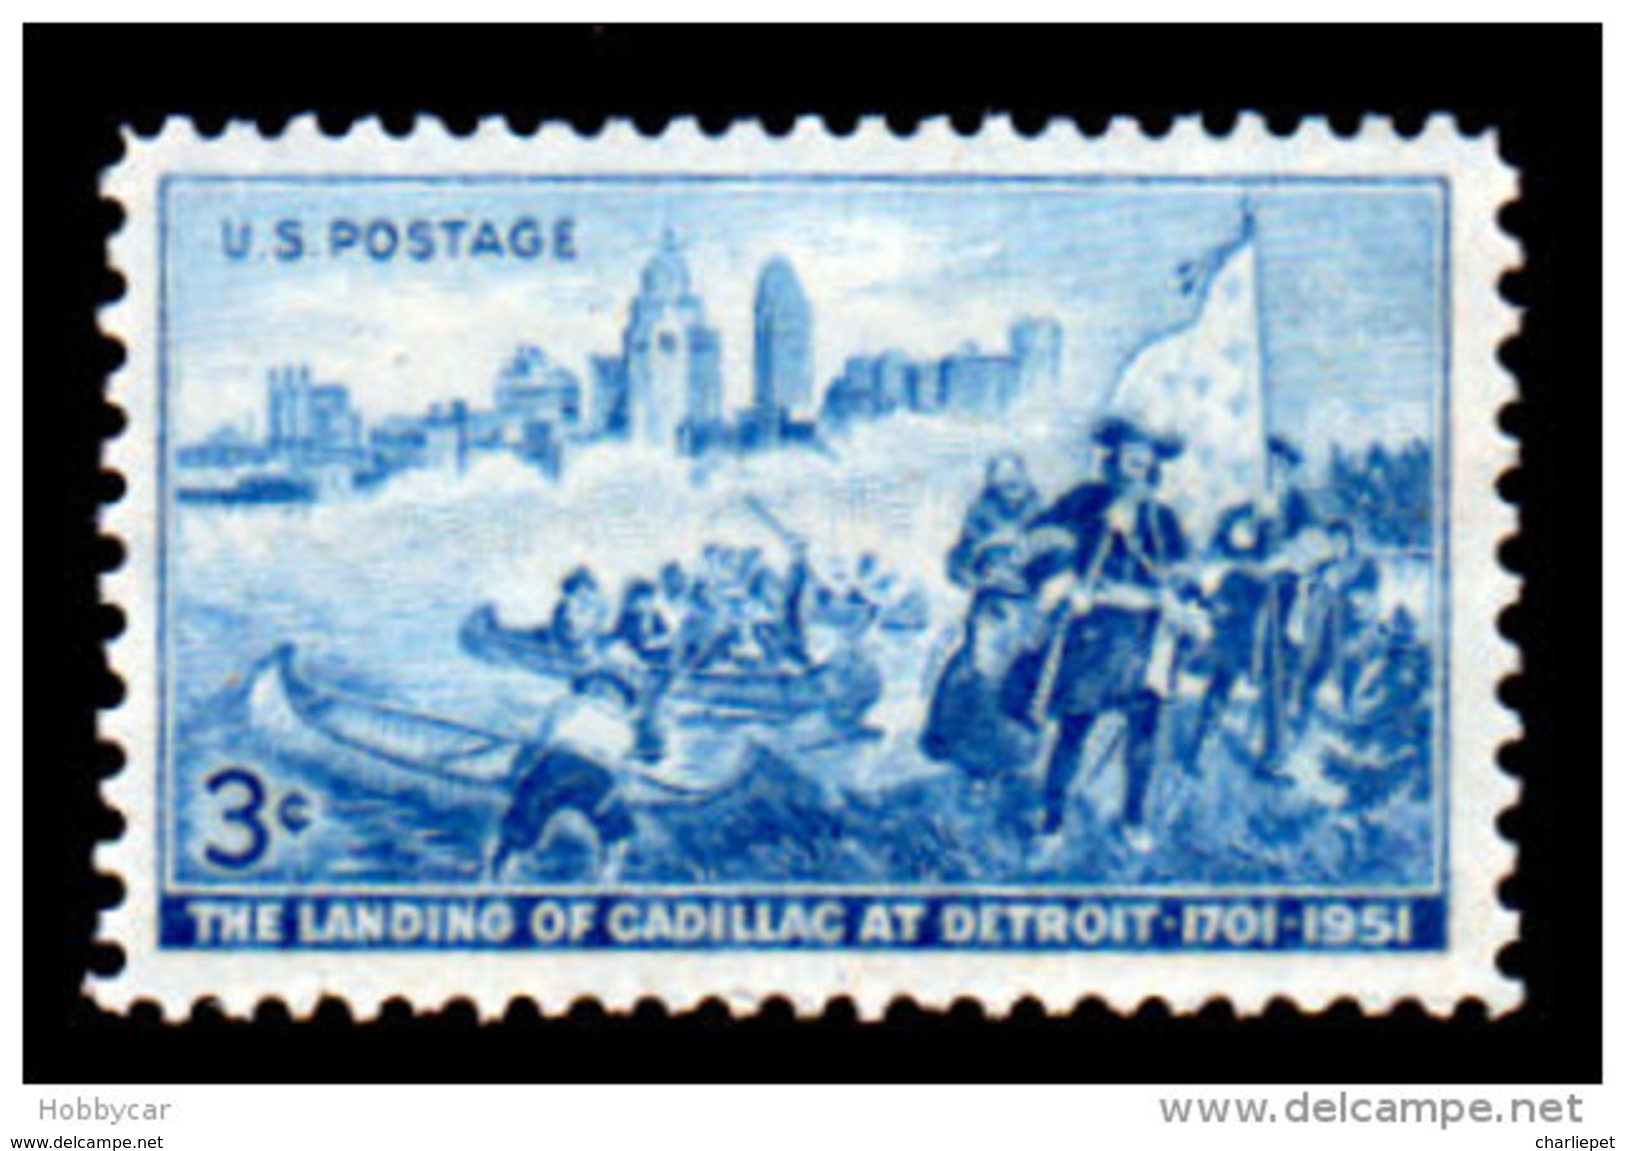 United States  1951, Scott # 1000, Cadillac Landining In Detroit , 3c MNH This Is A Stock Photo - United States